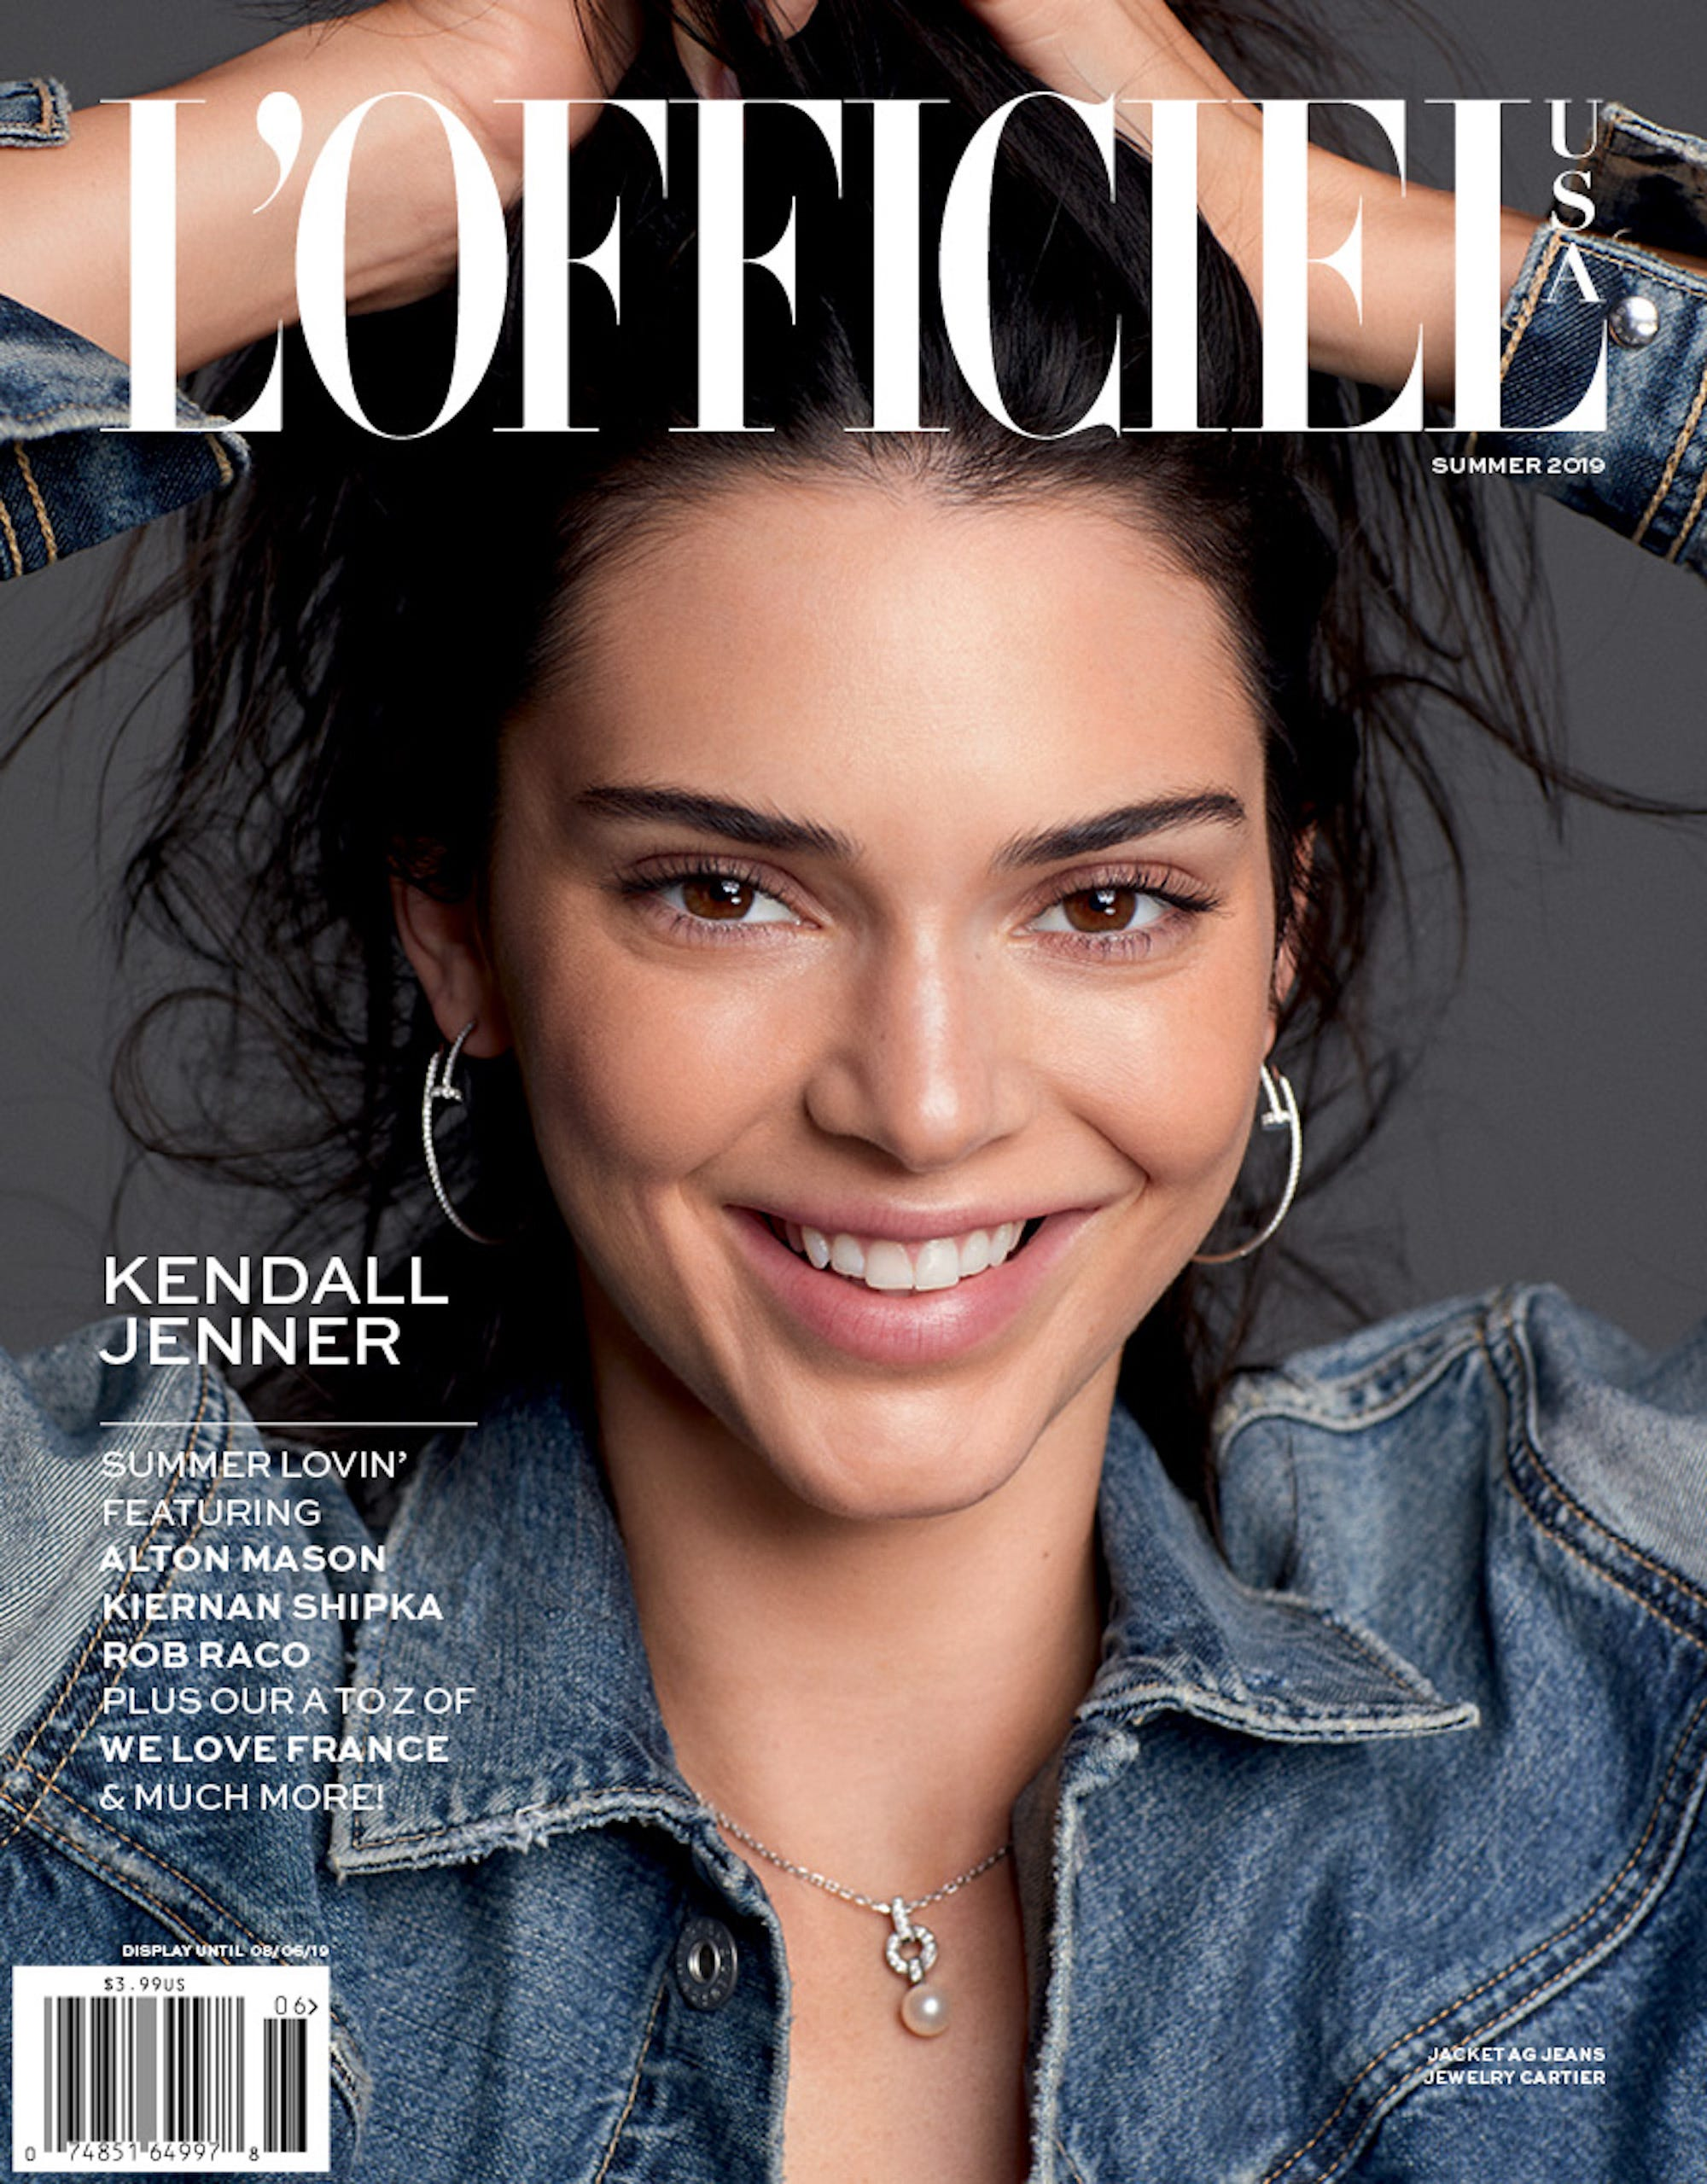 """Exclusive: Russell James Shoots Kendall Jenner For L'Officiel — & Defends Her Status As A """"Supermodel"""""""